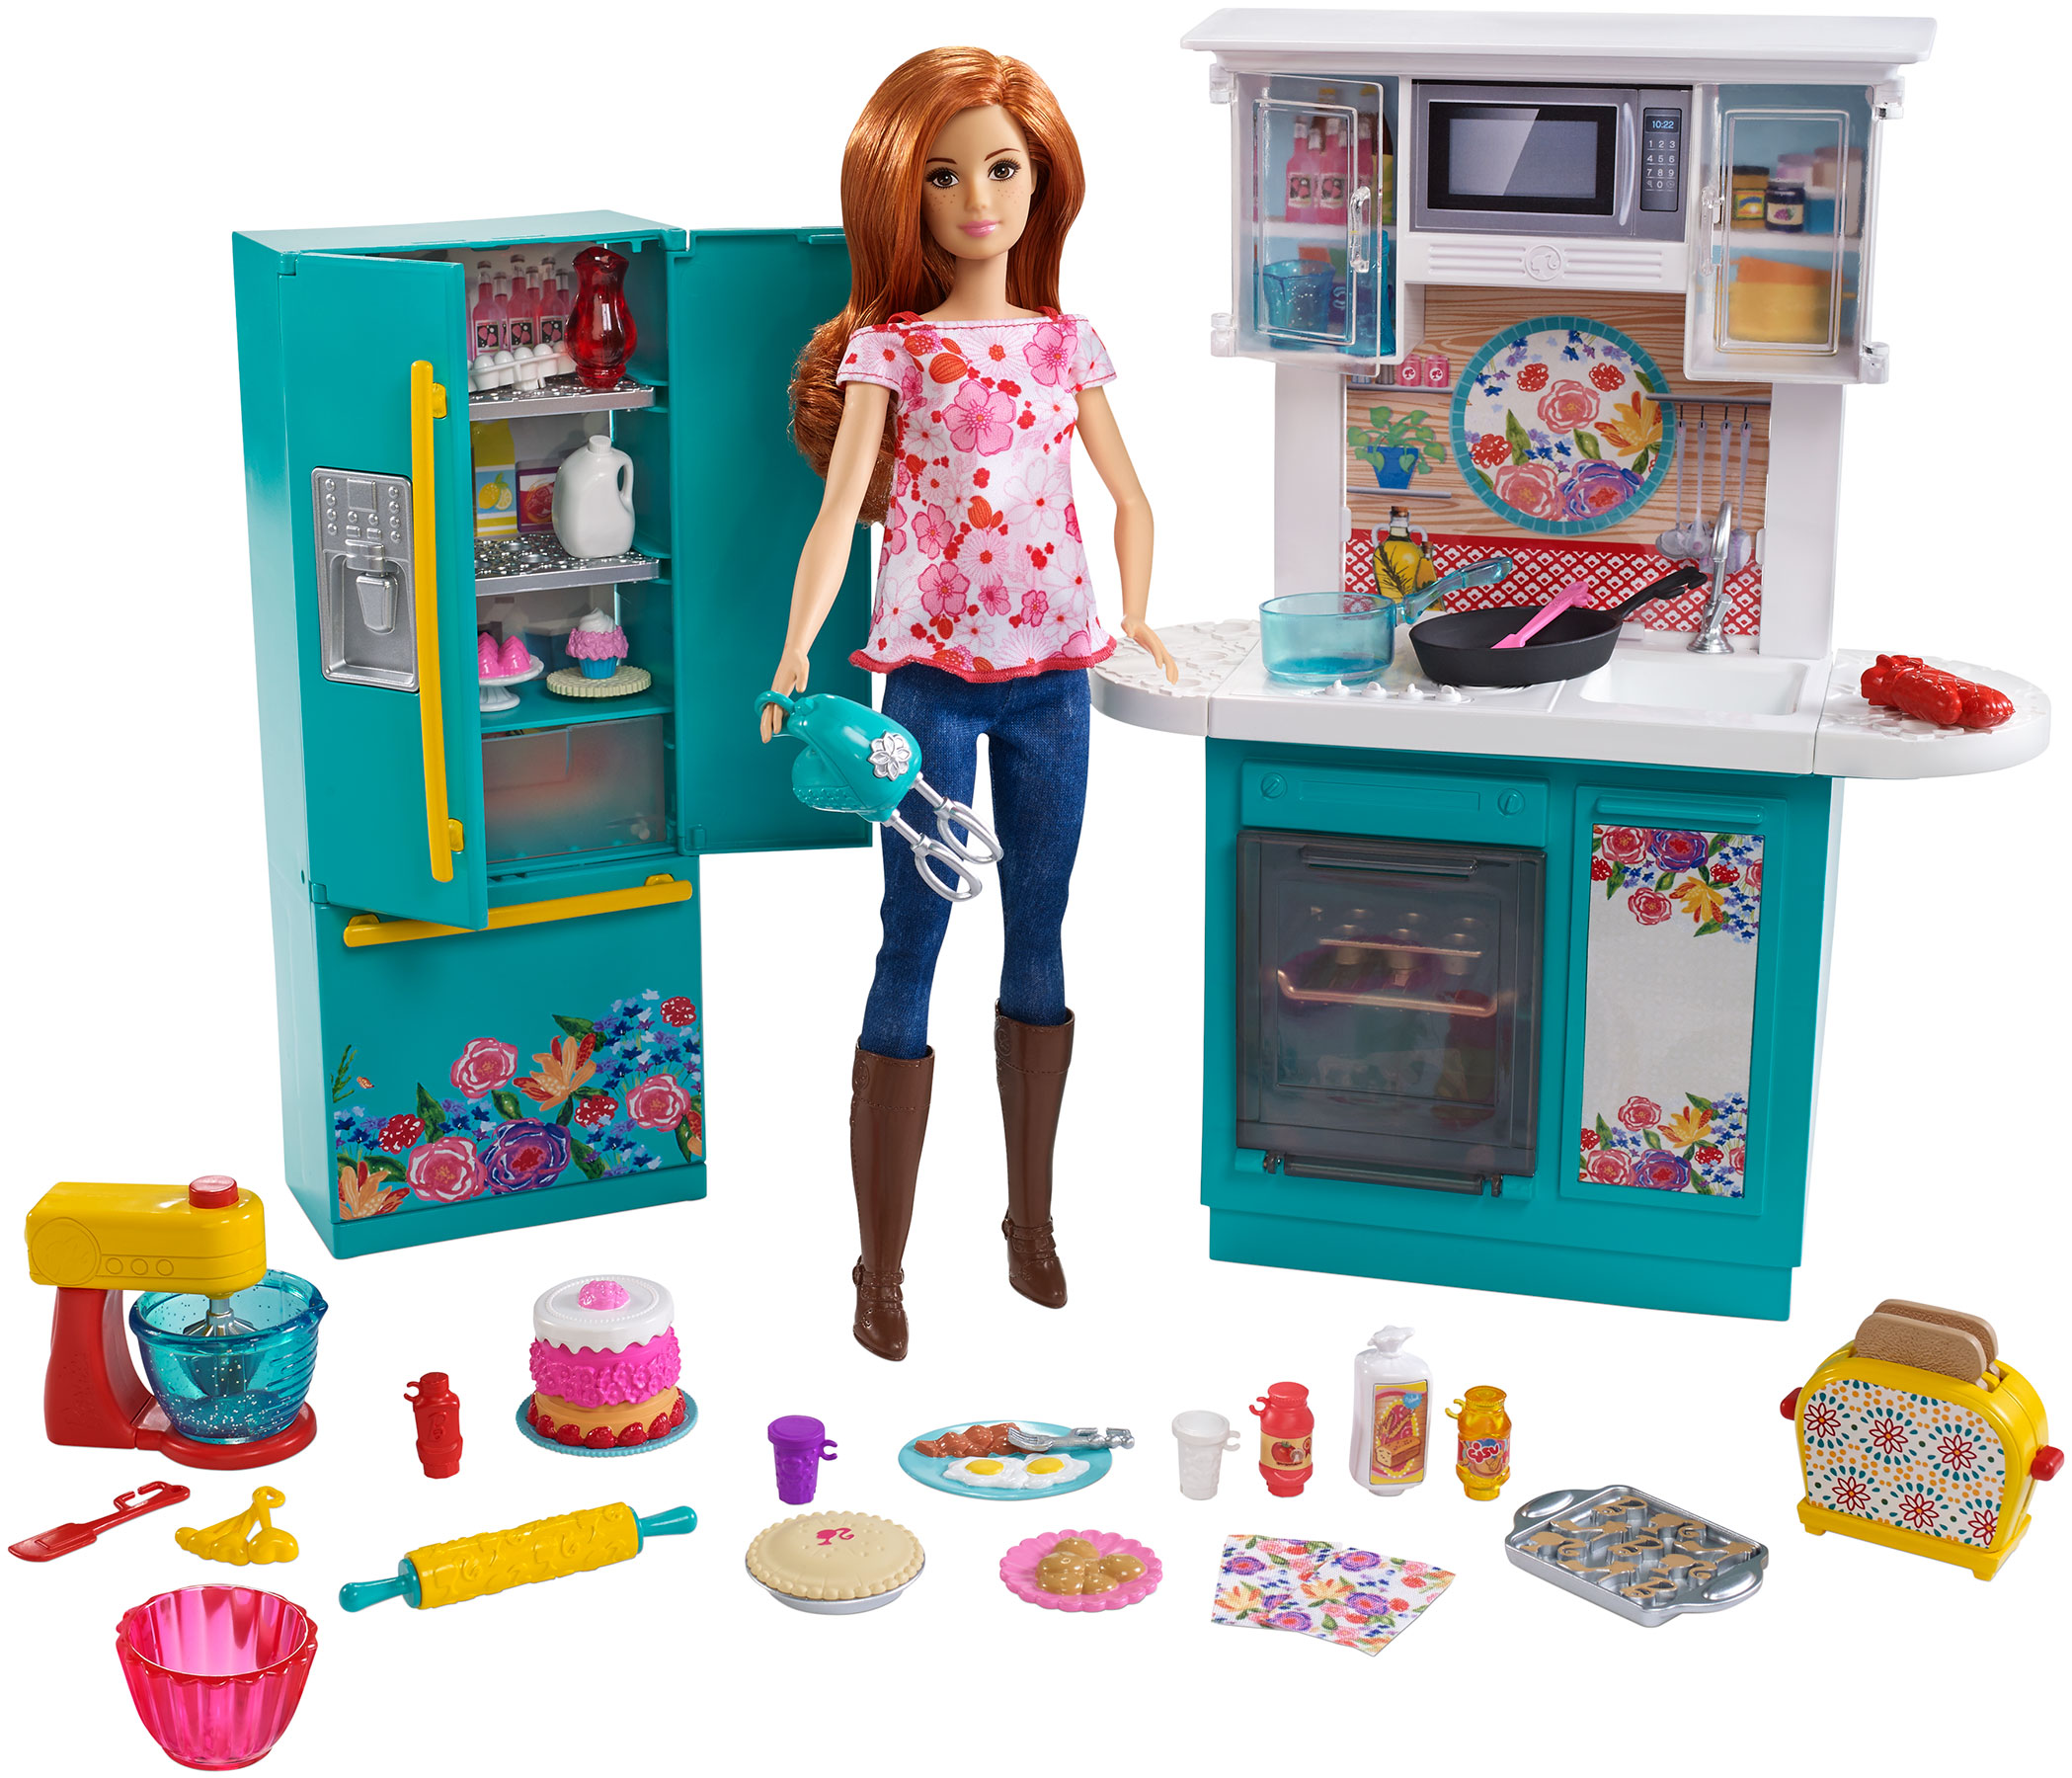 Pioneer Woman Ree Drummond 3 Kitchen Playset